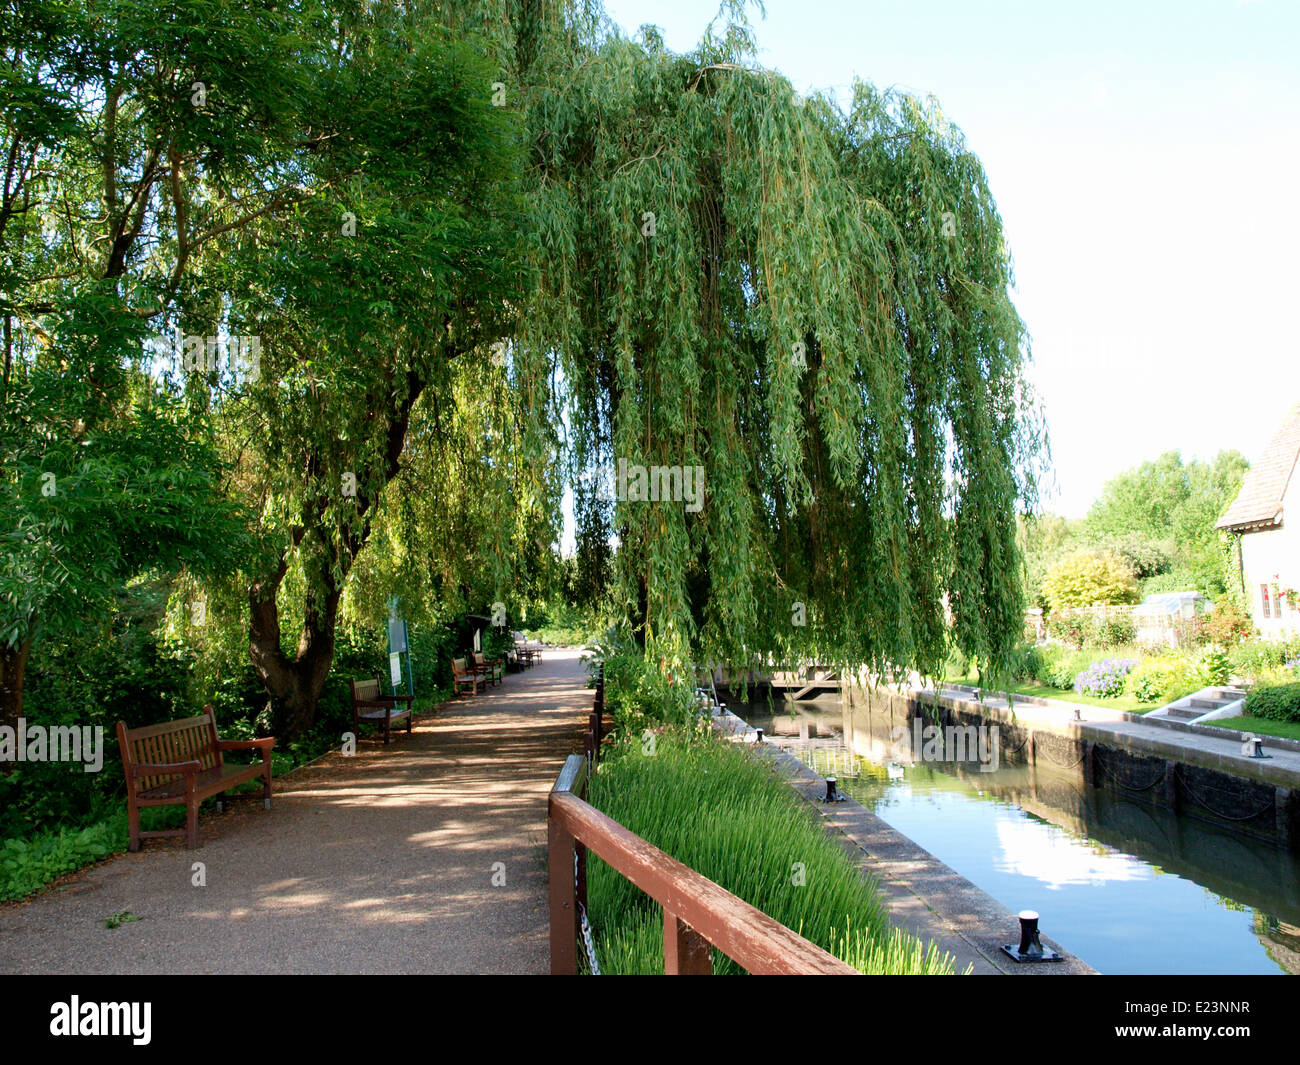 Public benches along the towpath at Iffley Lock, River Thames, Oxford, UK - Stock Image